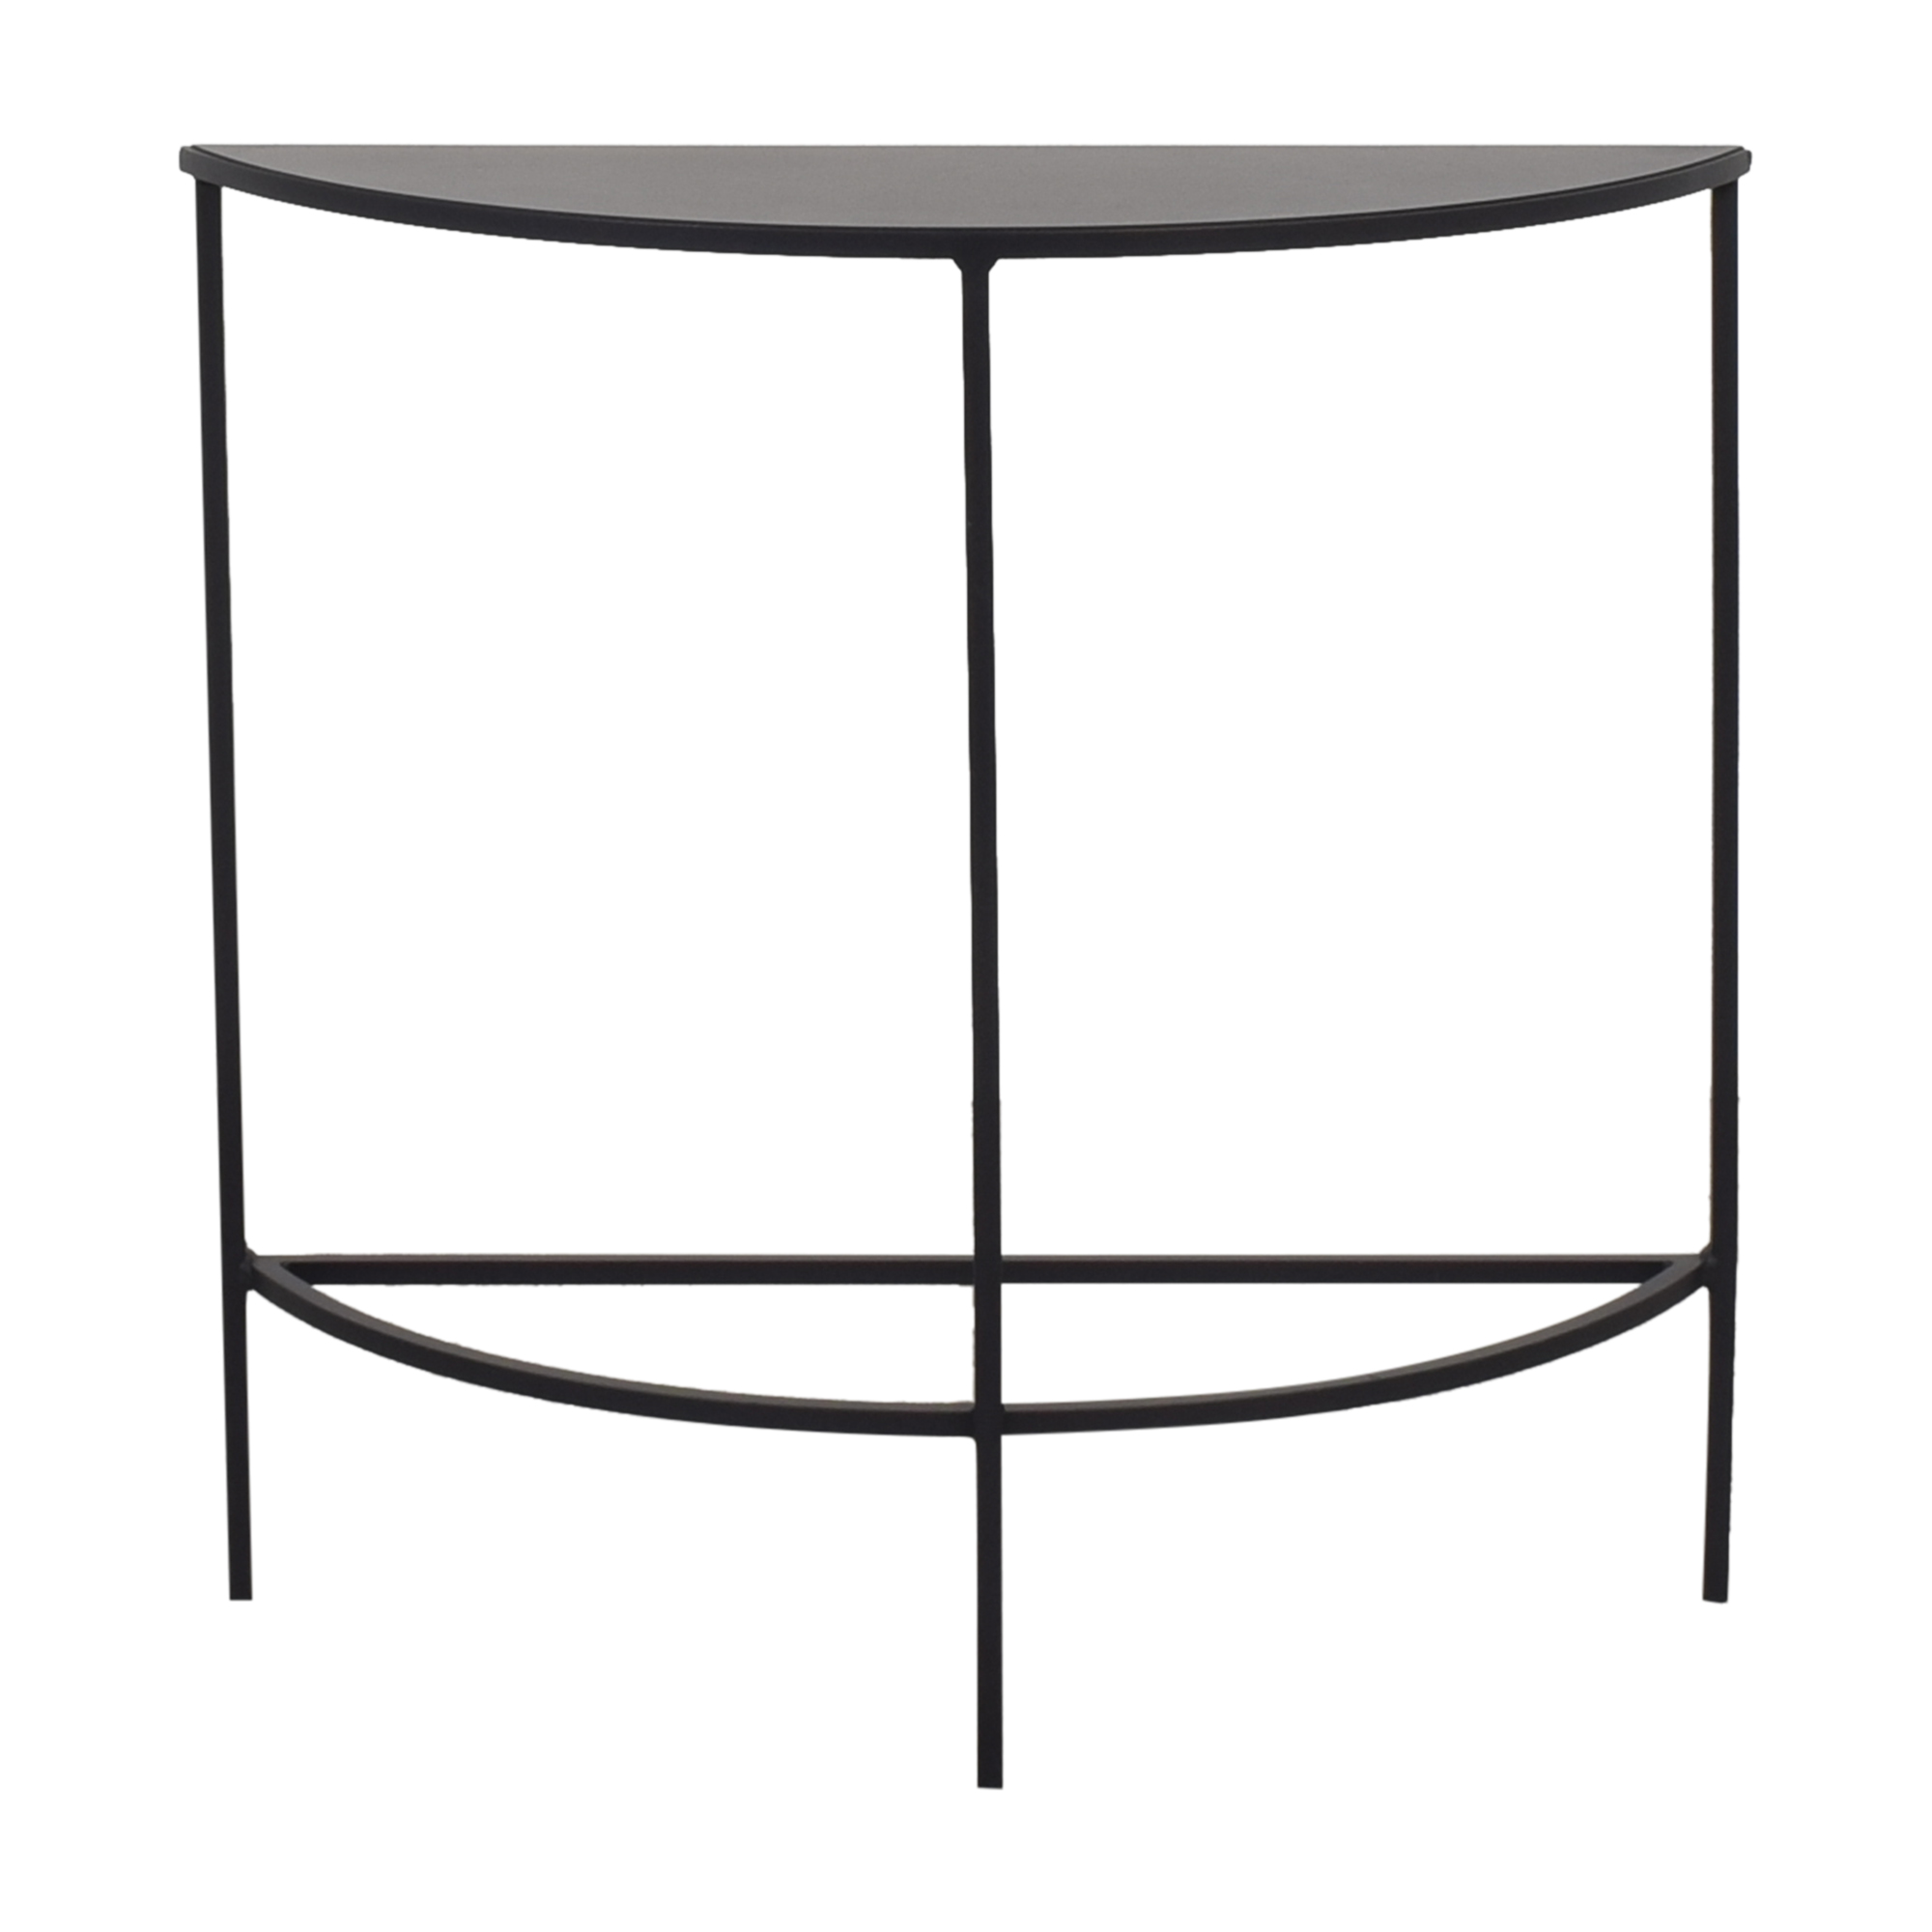 Room & Board Room & Board Slim Half Round Console Table